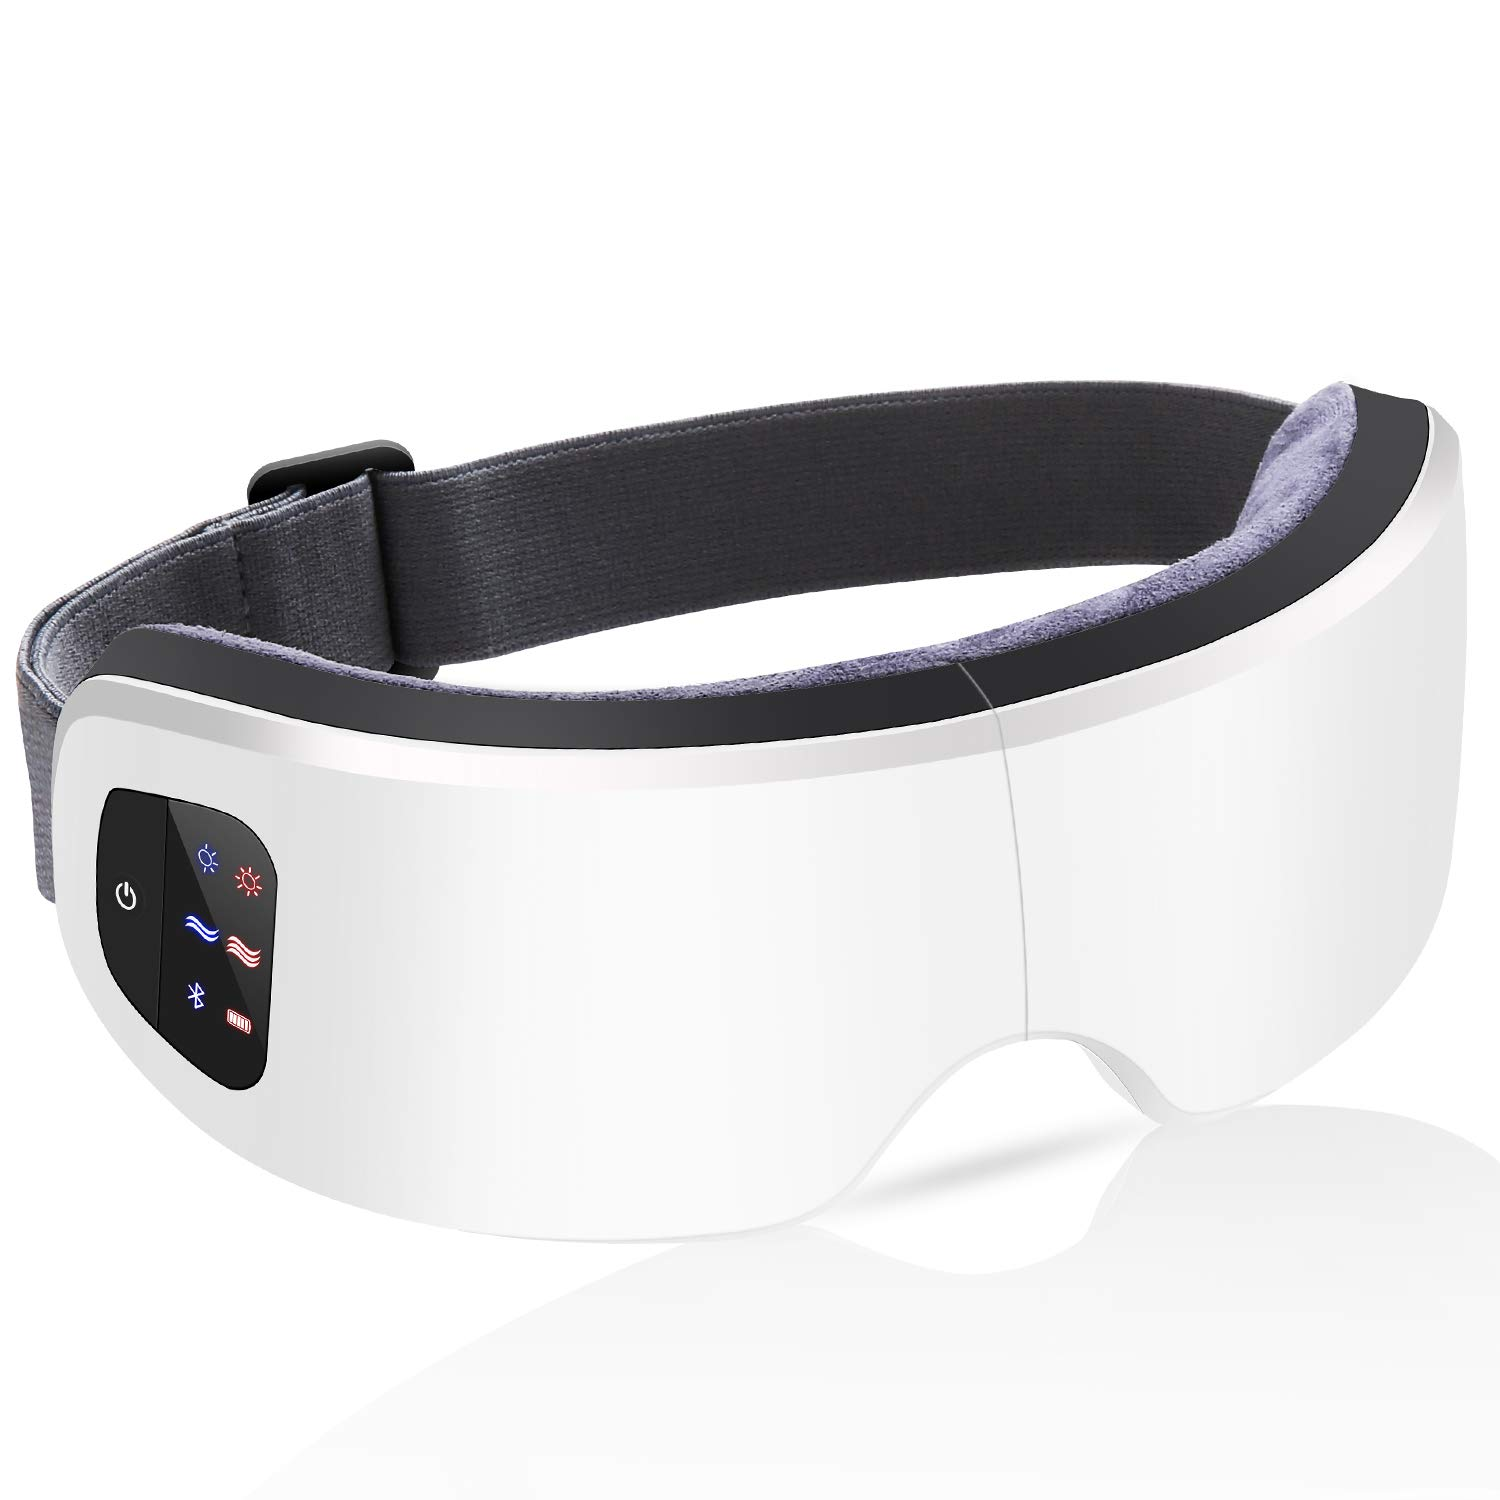 Compression Bluetooth Relieving Improving Circulation